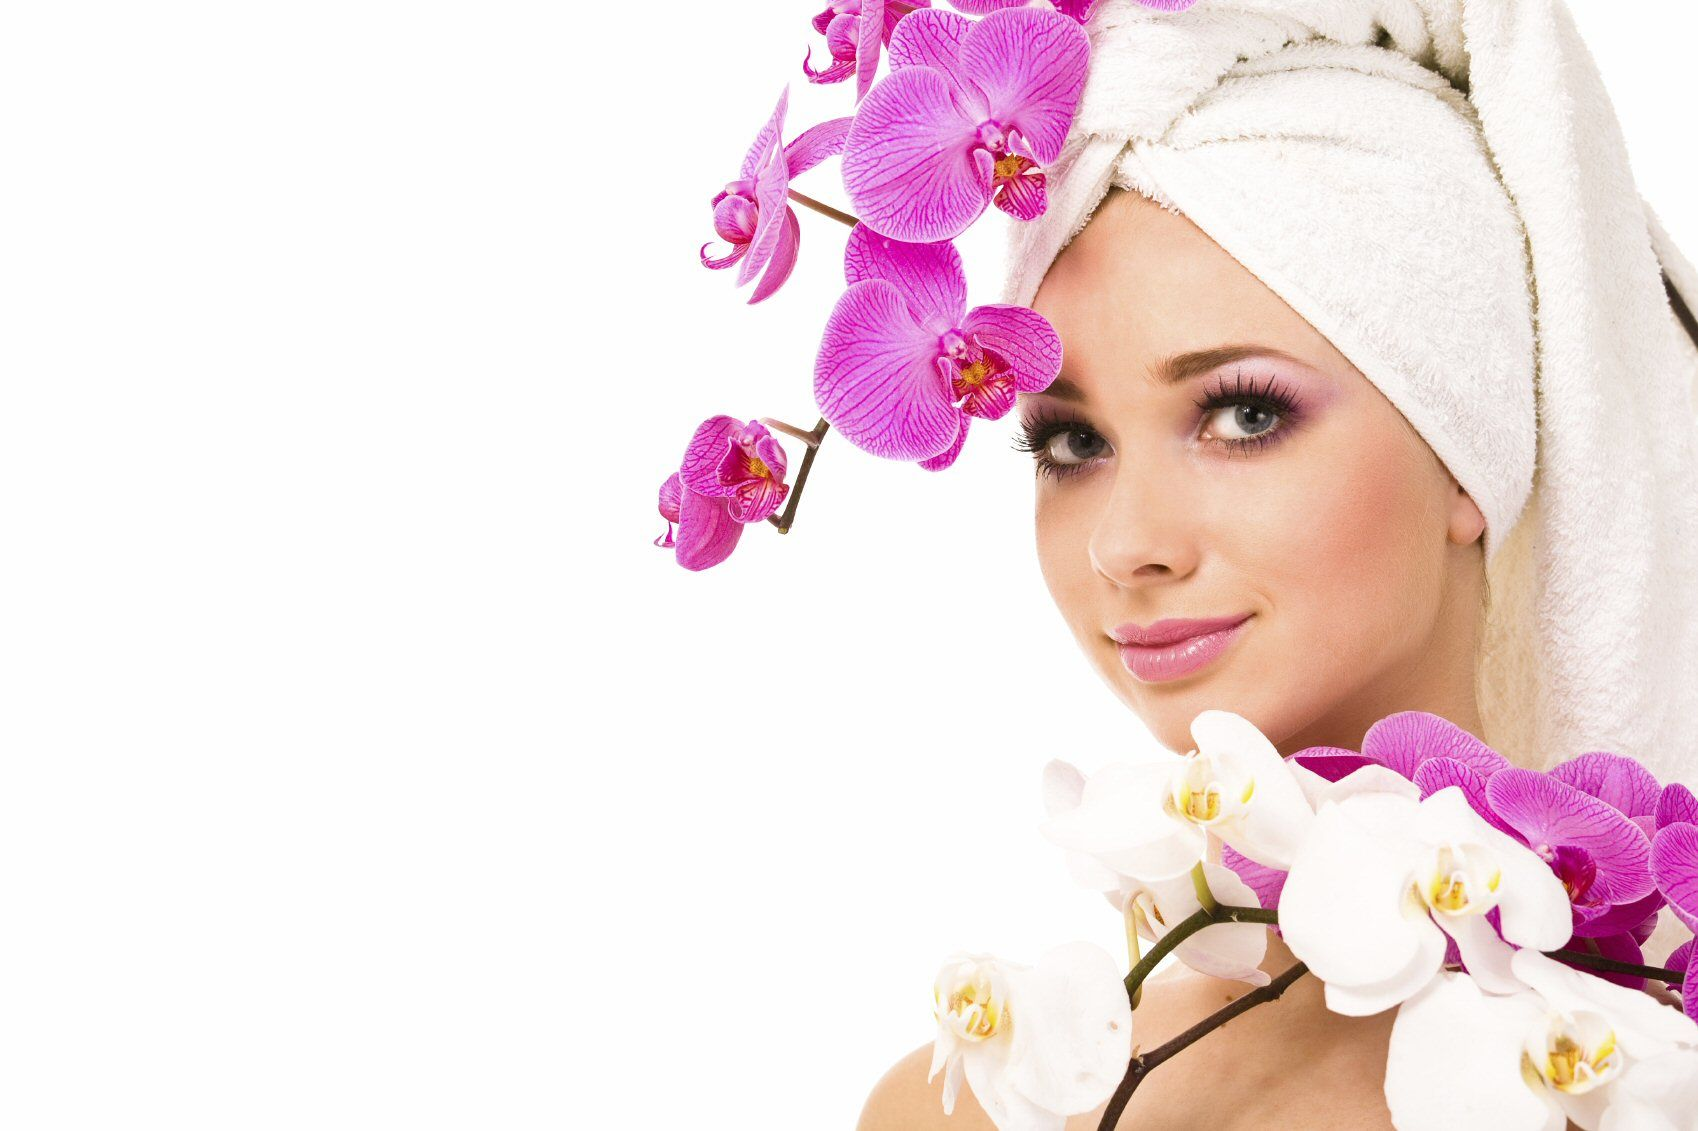 Royal Day Spa - Does Princess, Diva, and Oriental makeover parties or spa days for little girls!